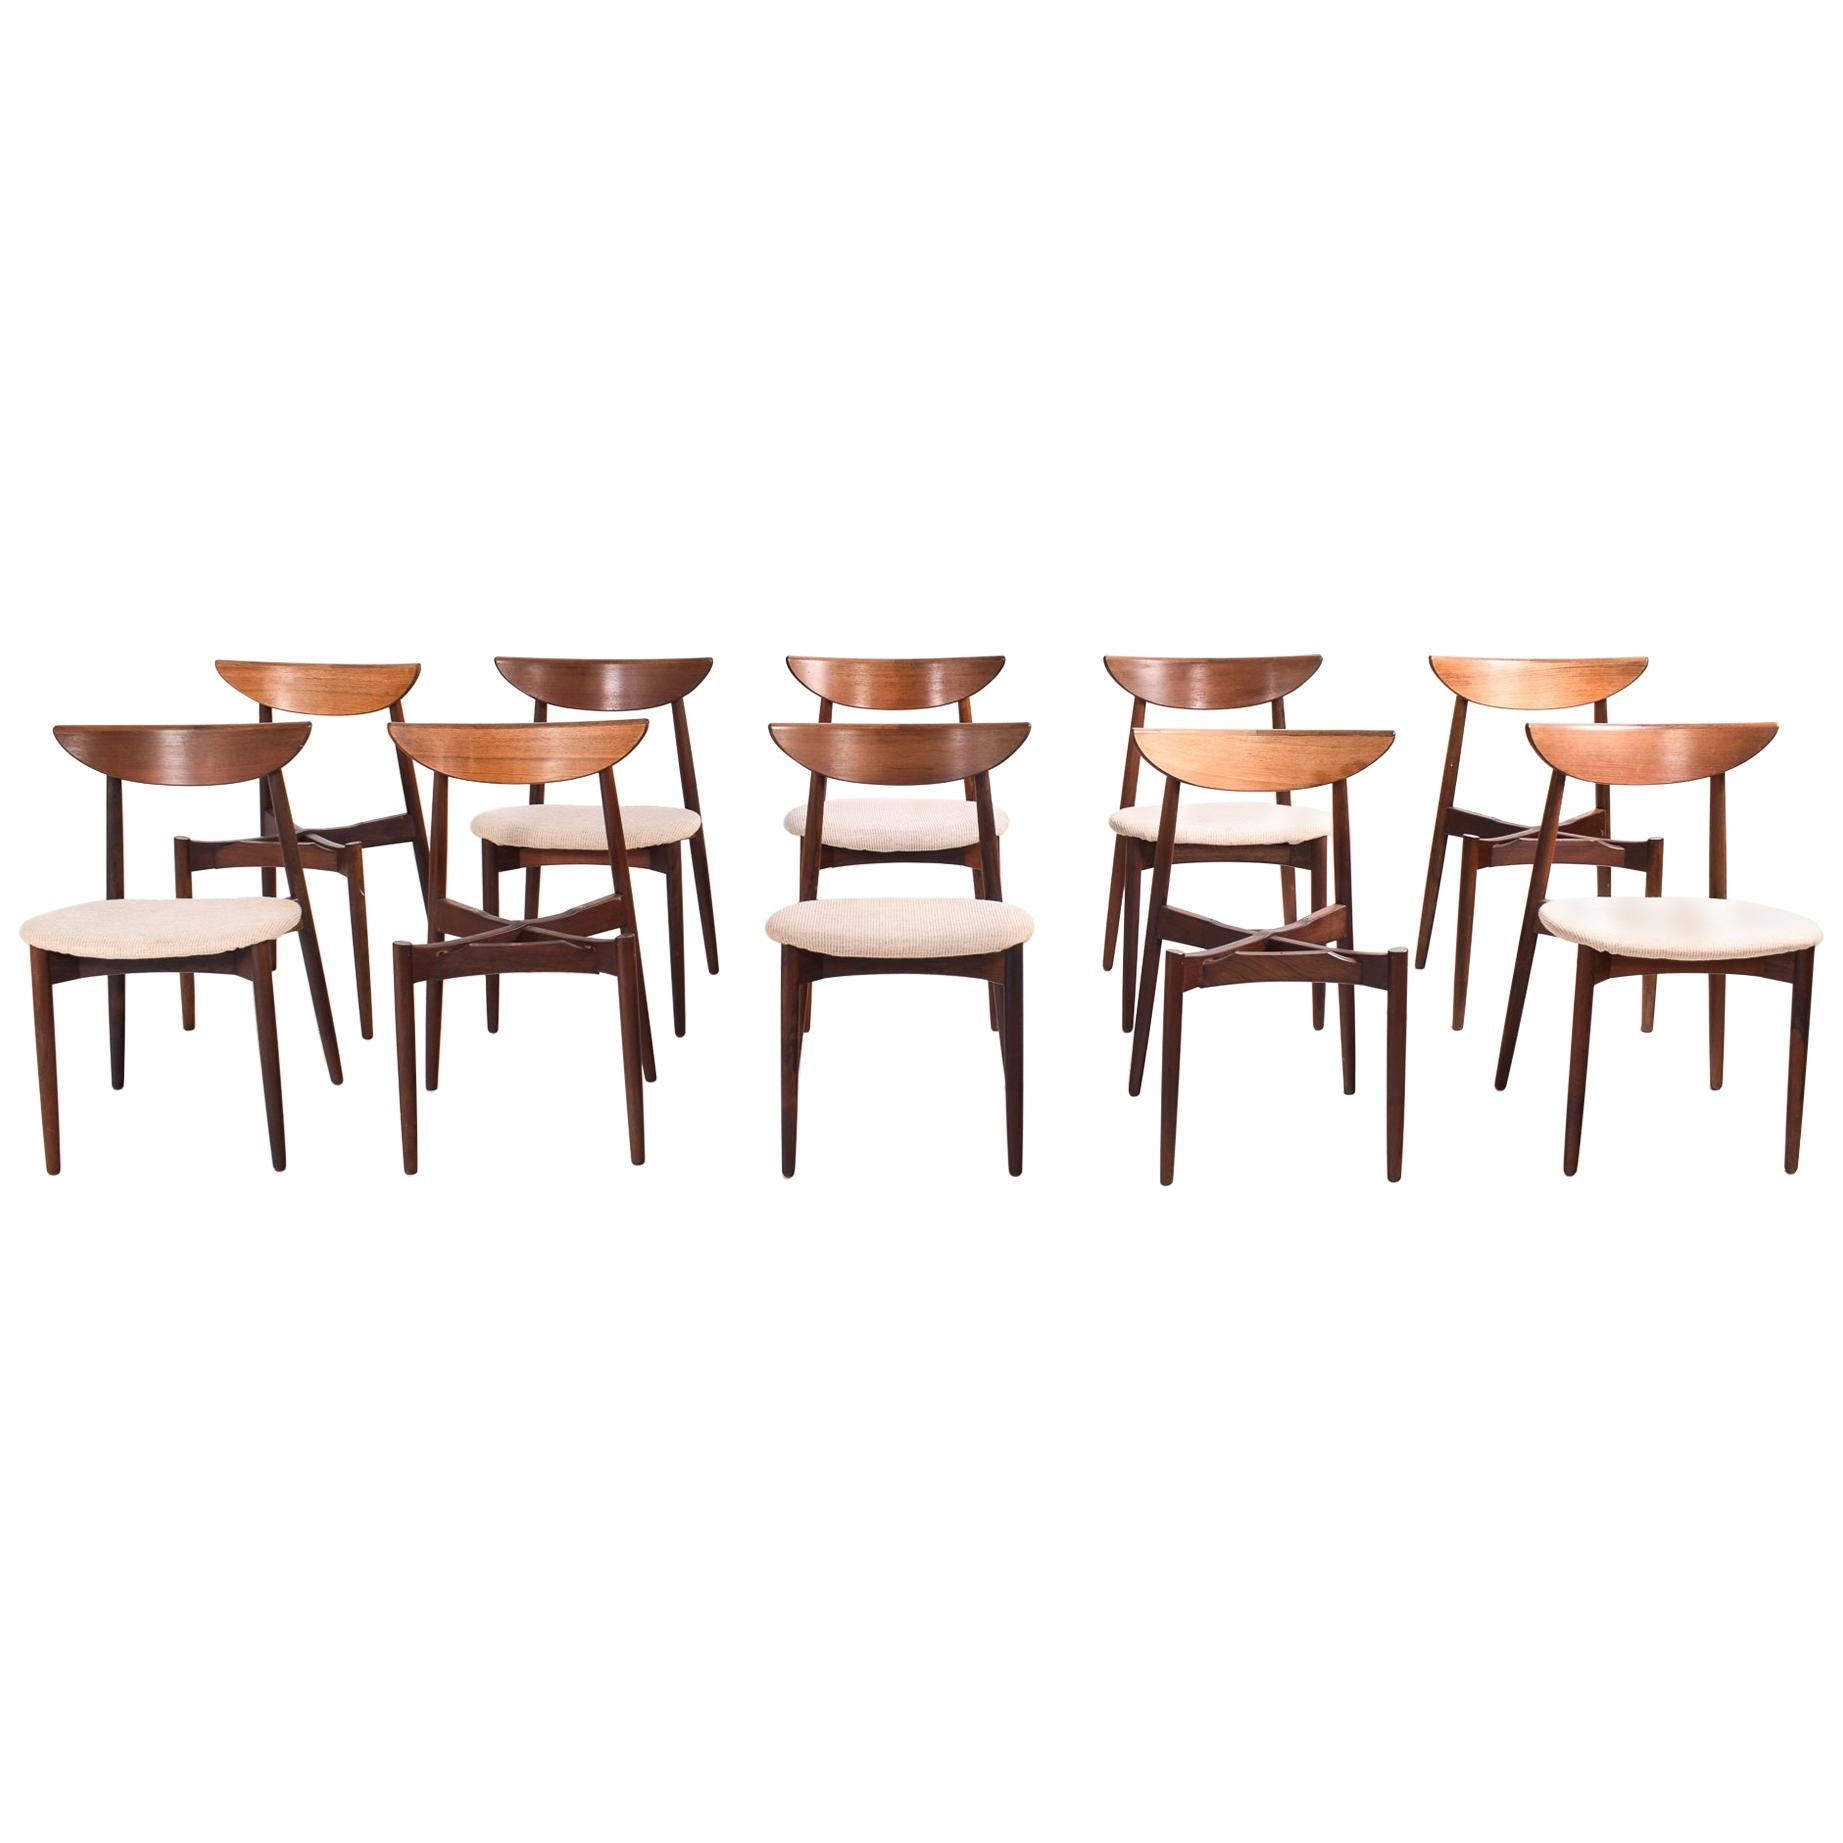 Set of 10 Rosewood Dining Chairs by Harry Ostergaard for Randers